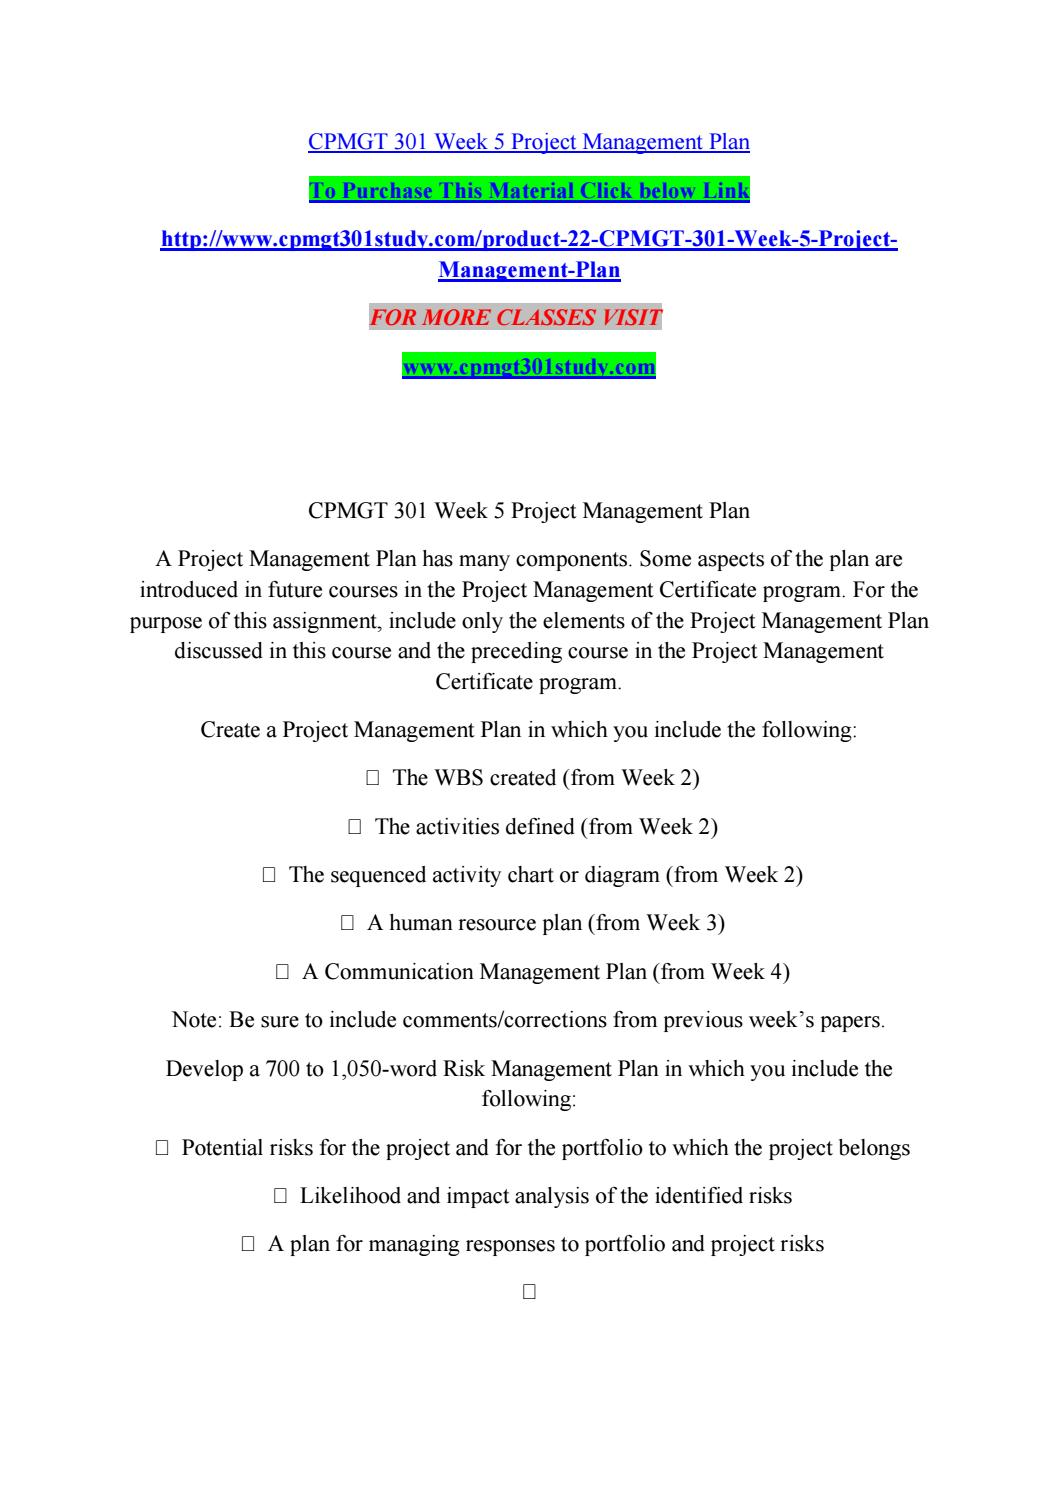 Cpmgt 301 Week 5 Project Management Plan By Banglorechowdaryroyal